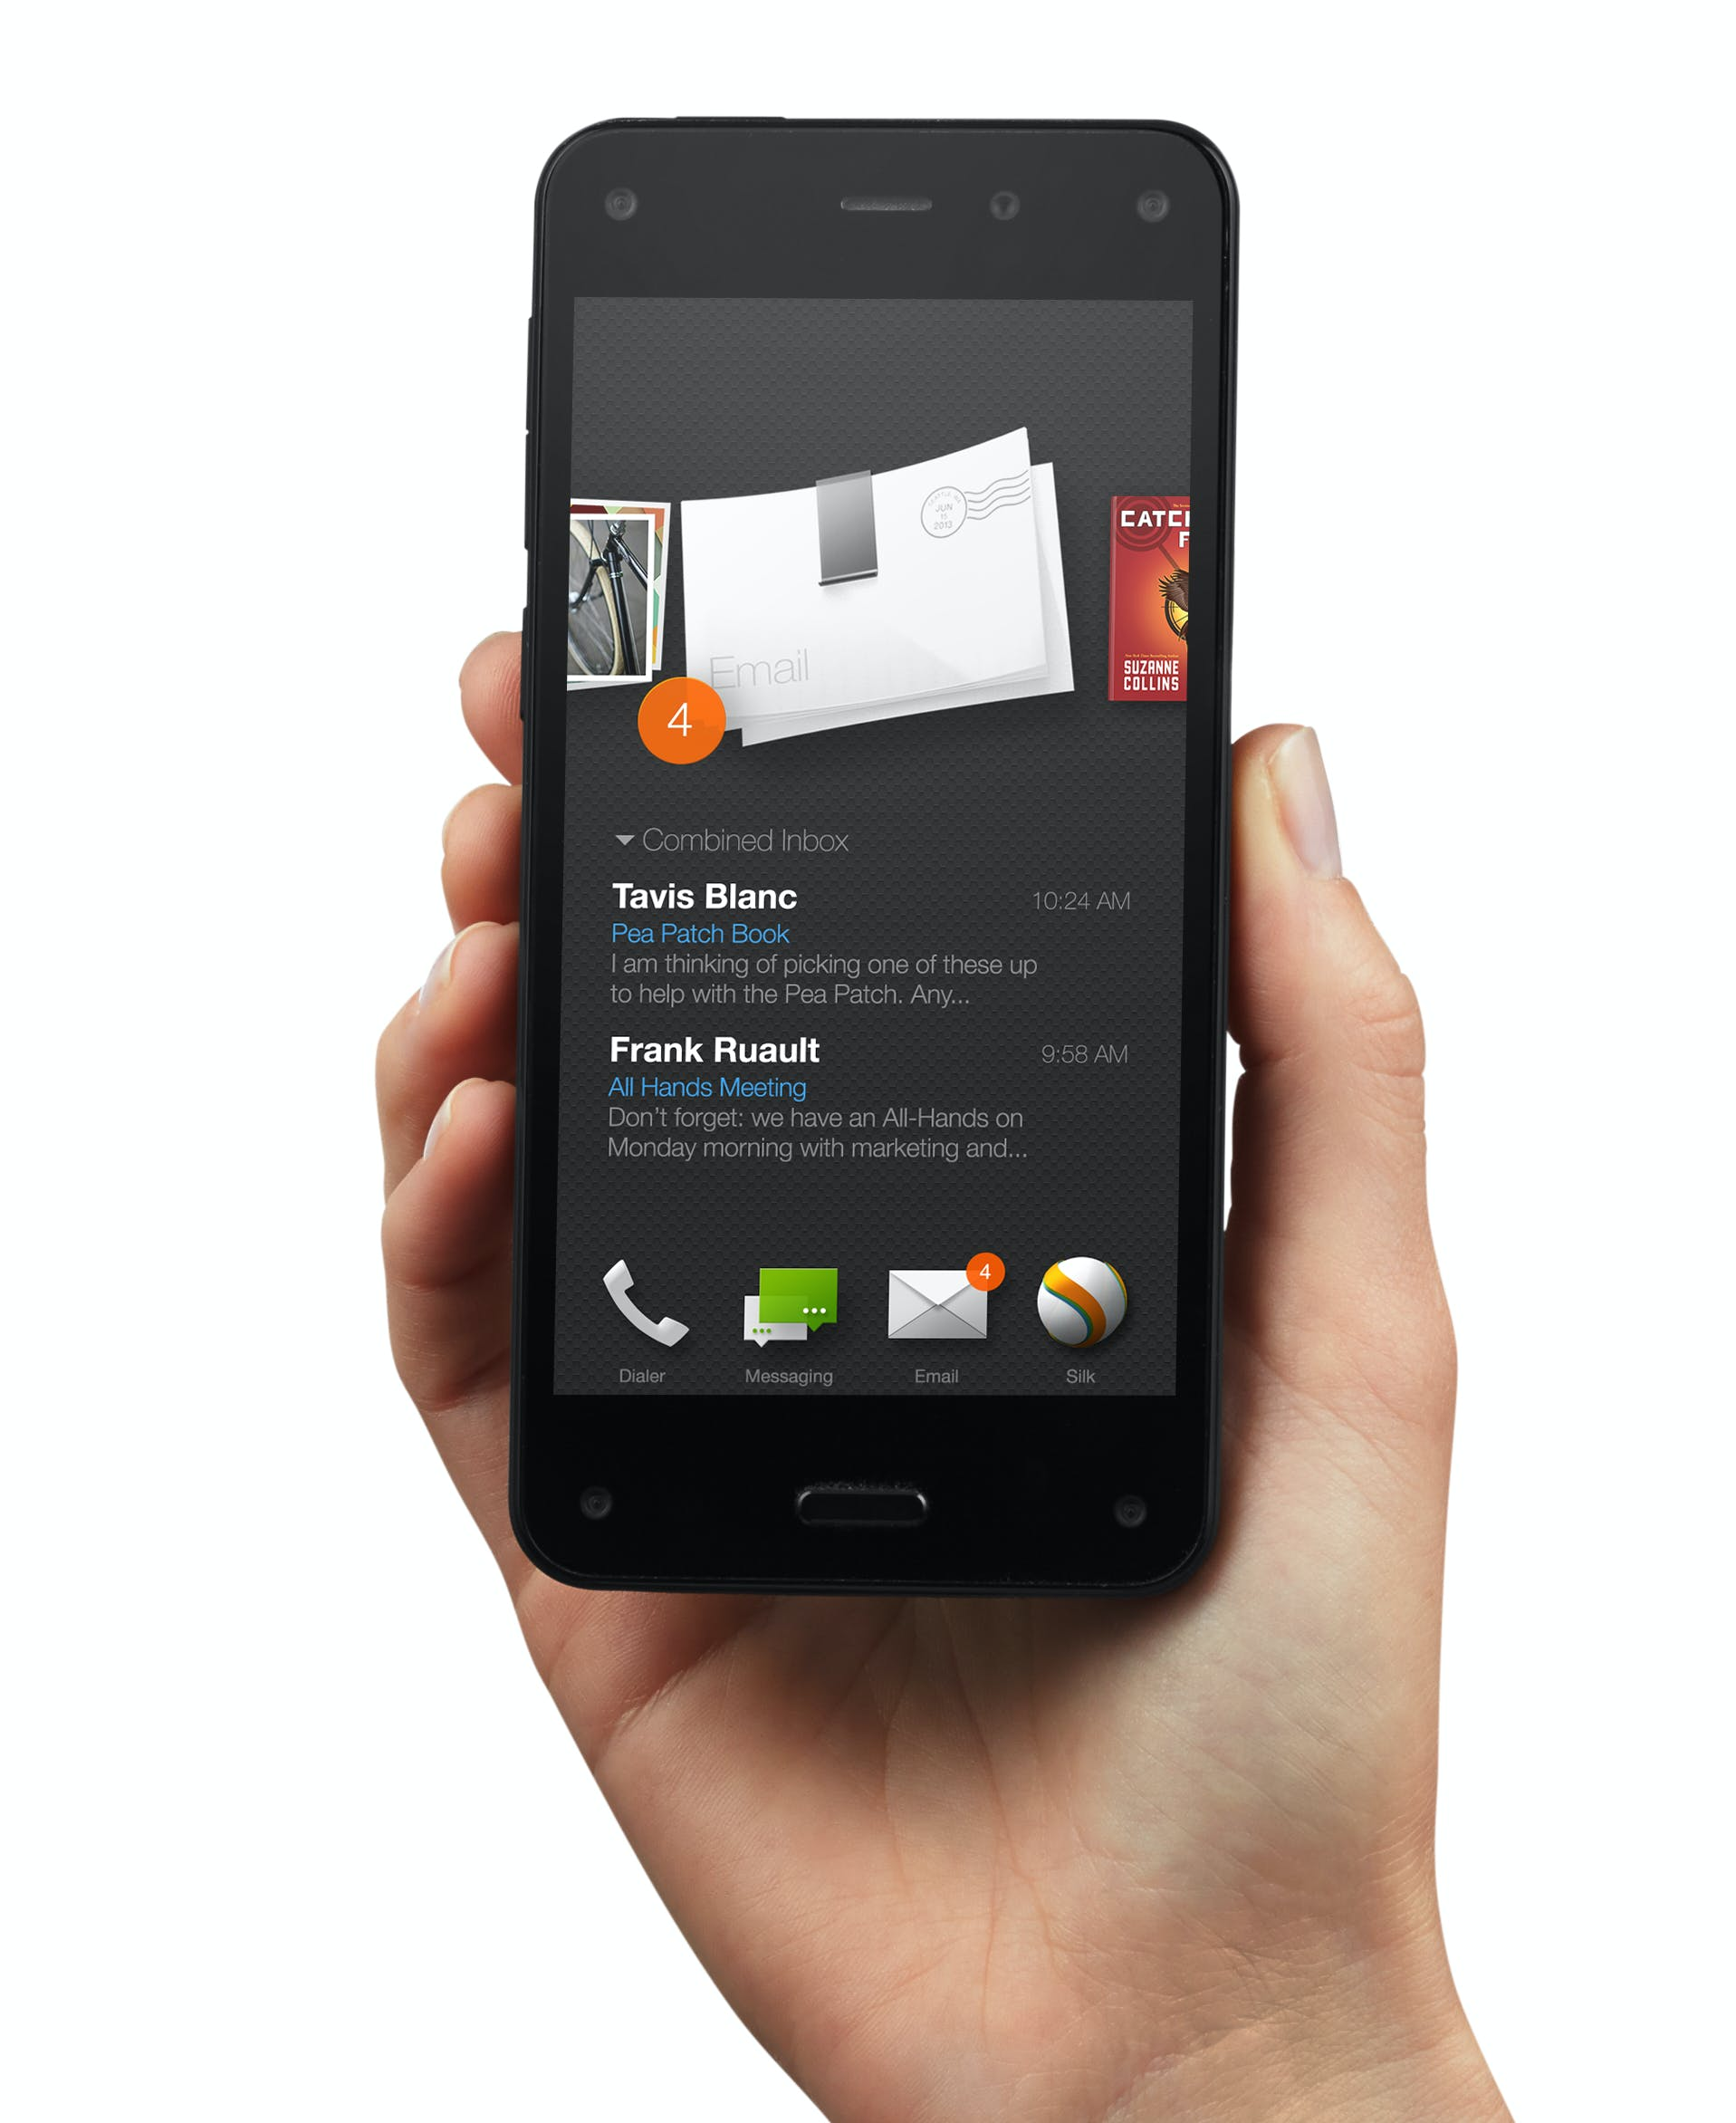 amazon fire phone in hand